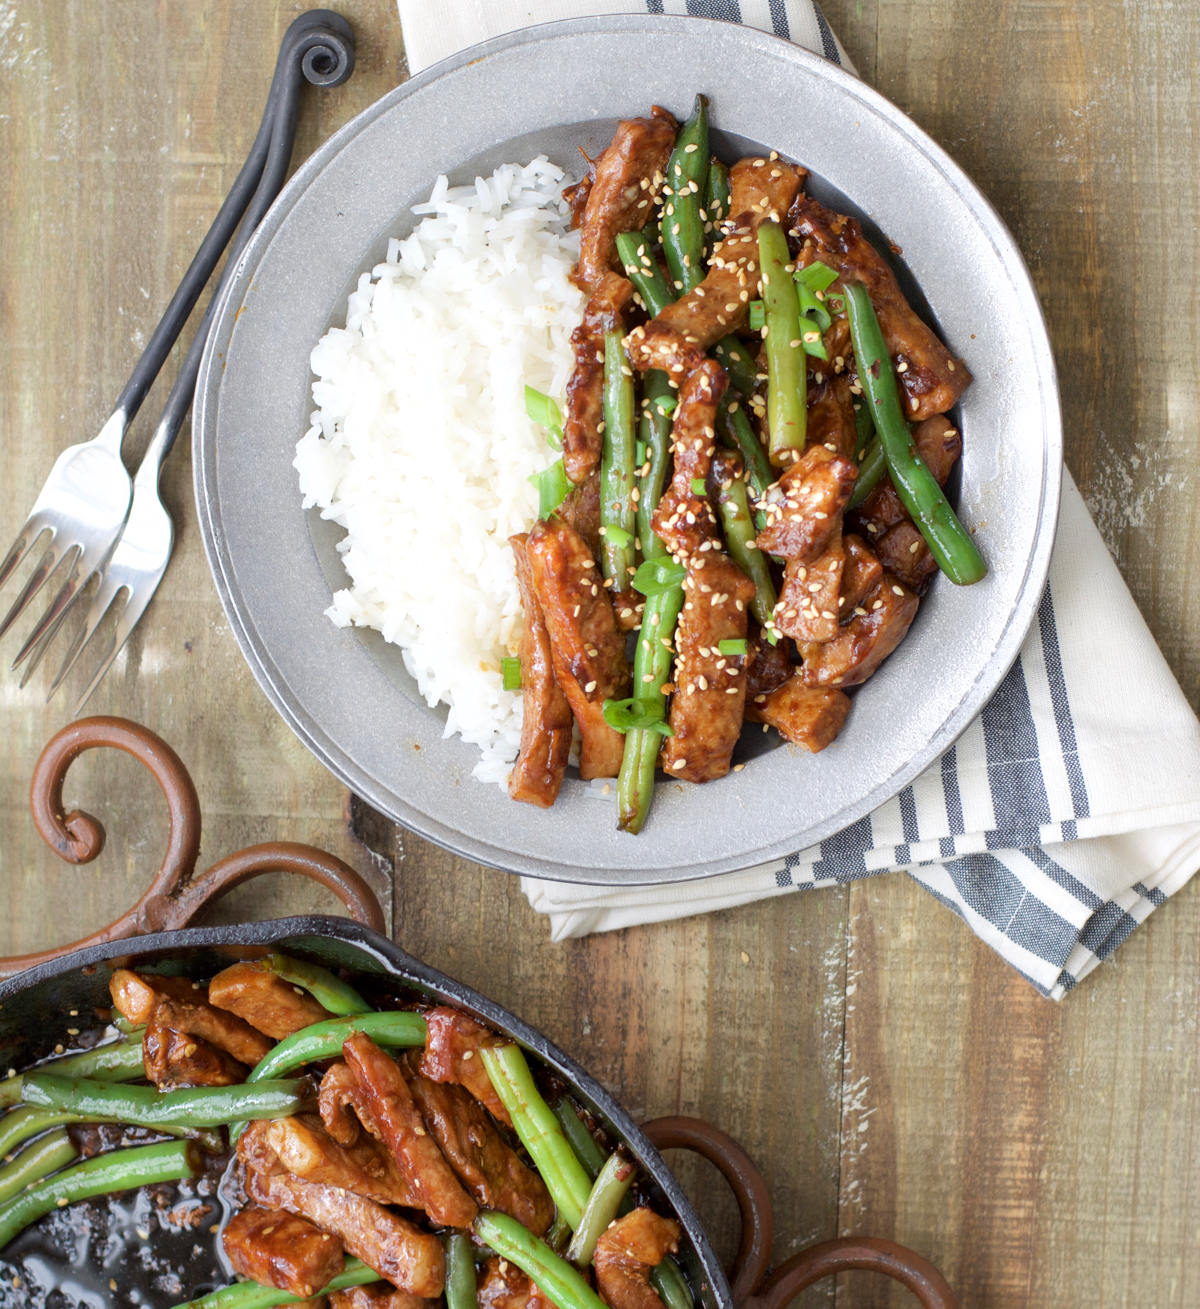 Overhead view of a portion of sesame pork chop stir fry with rice on a plate.